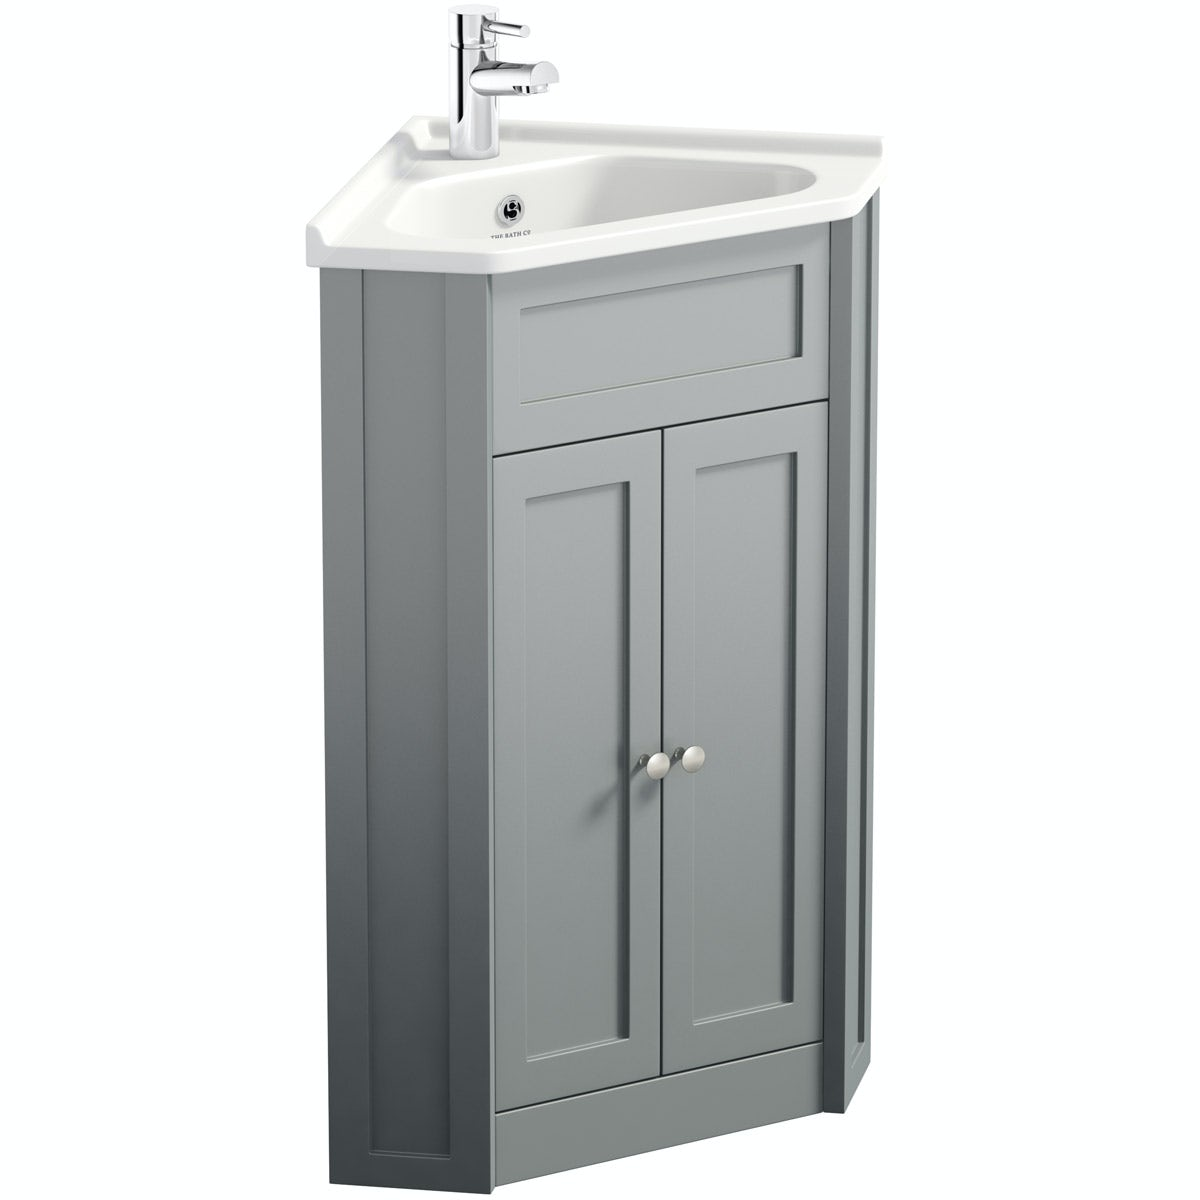 The Bath Co Camberley Satin Grey Corner Floorstanding Vanity Unit And Ceramic Basin 580mm